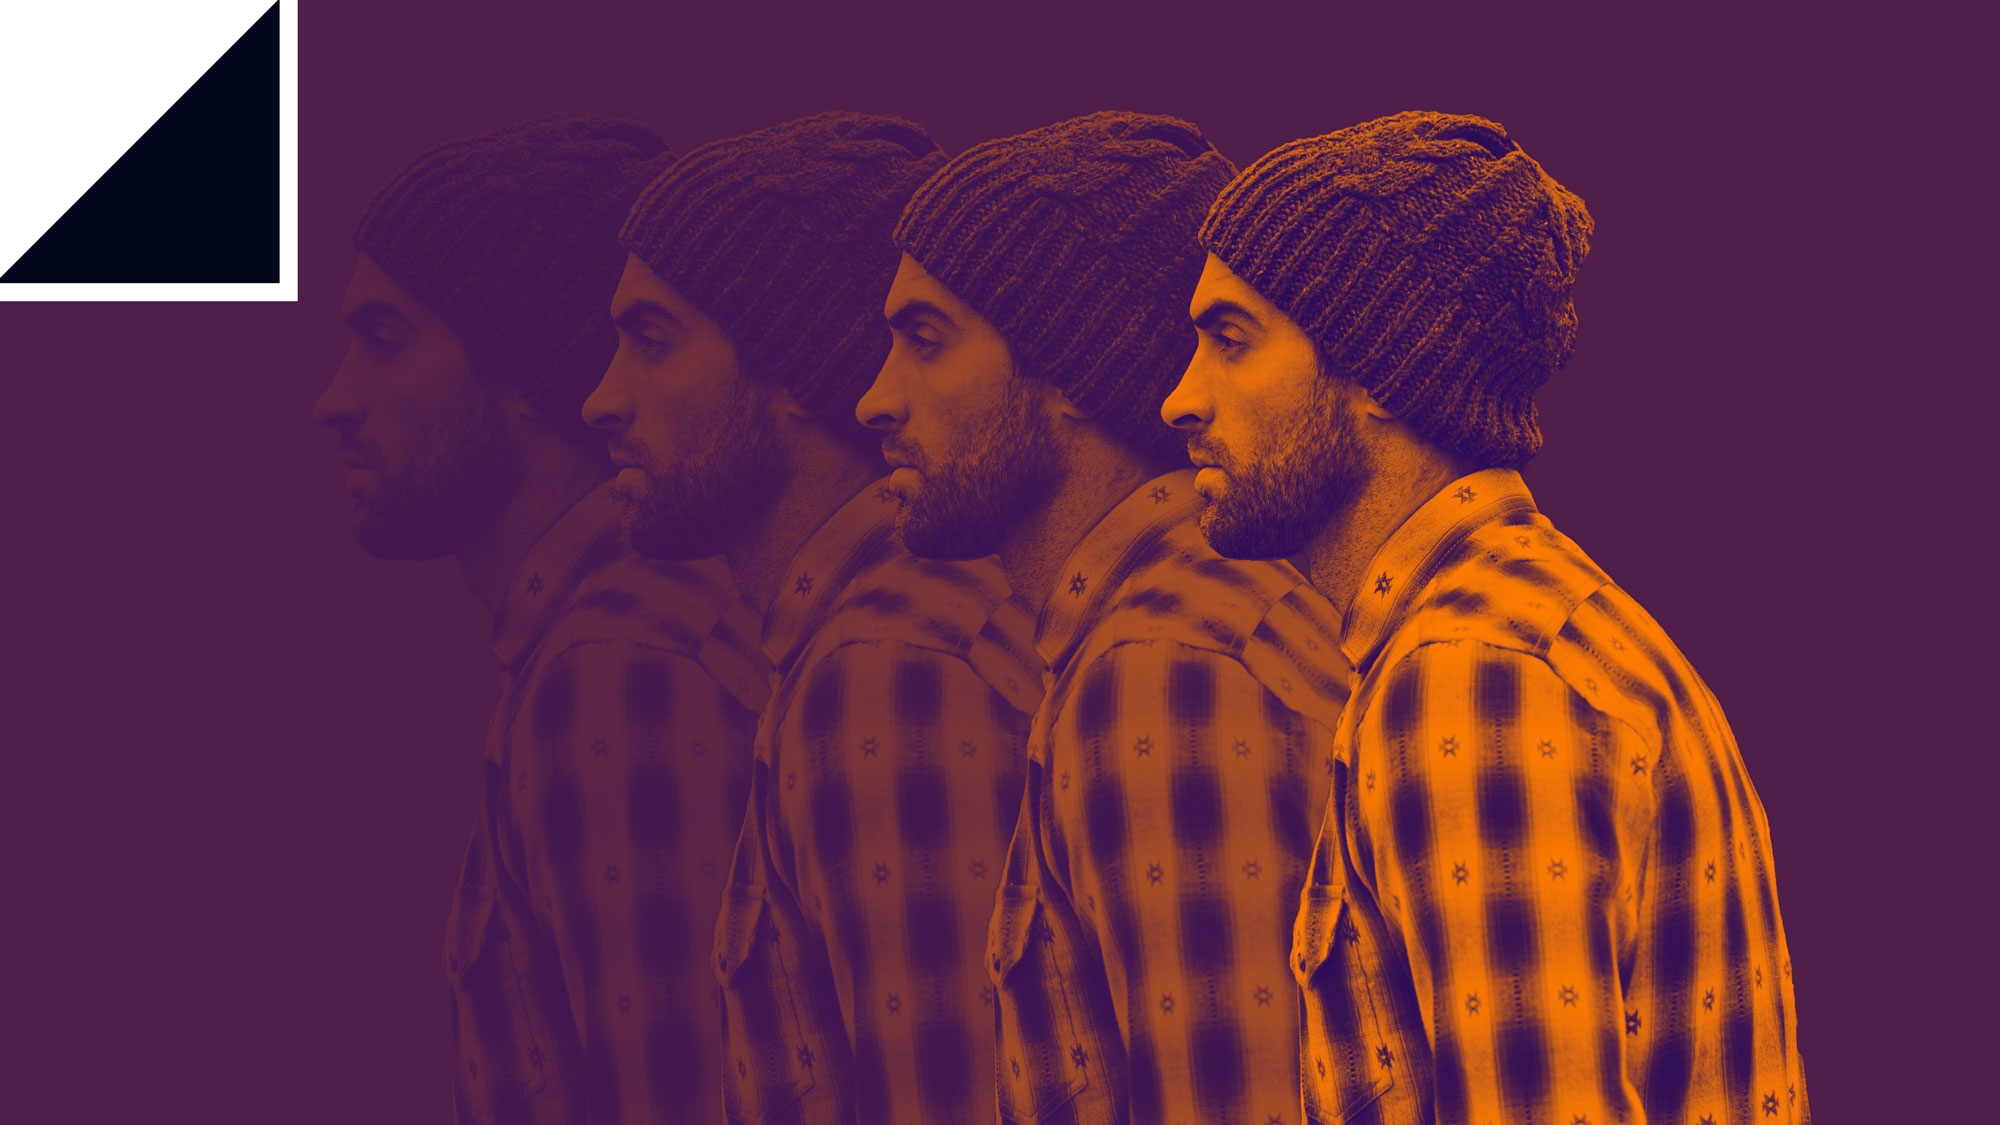 The hipster effect: Why anti-conformists always end up looking the same